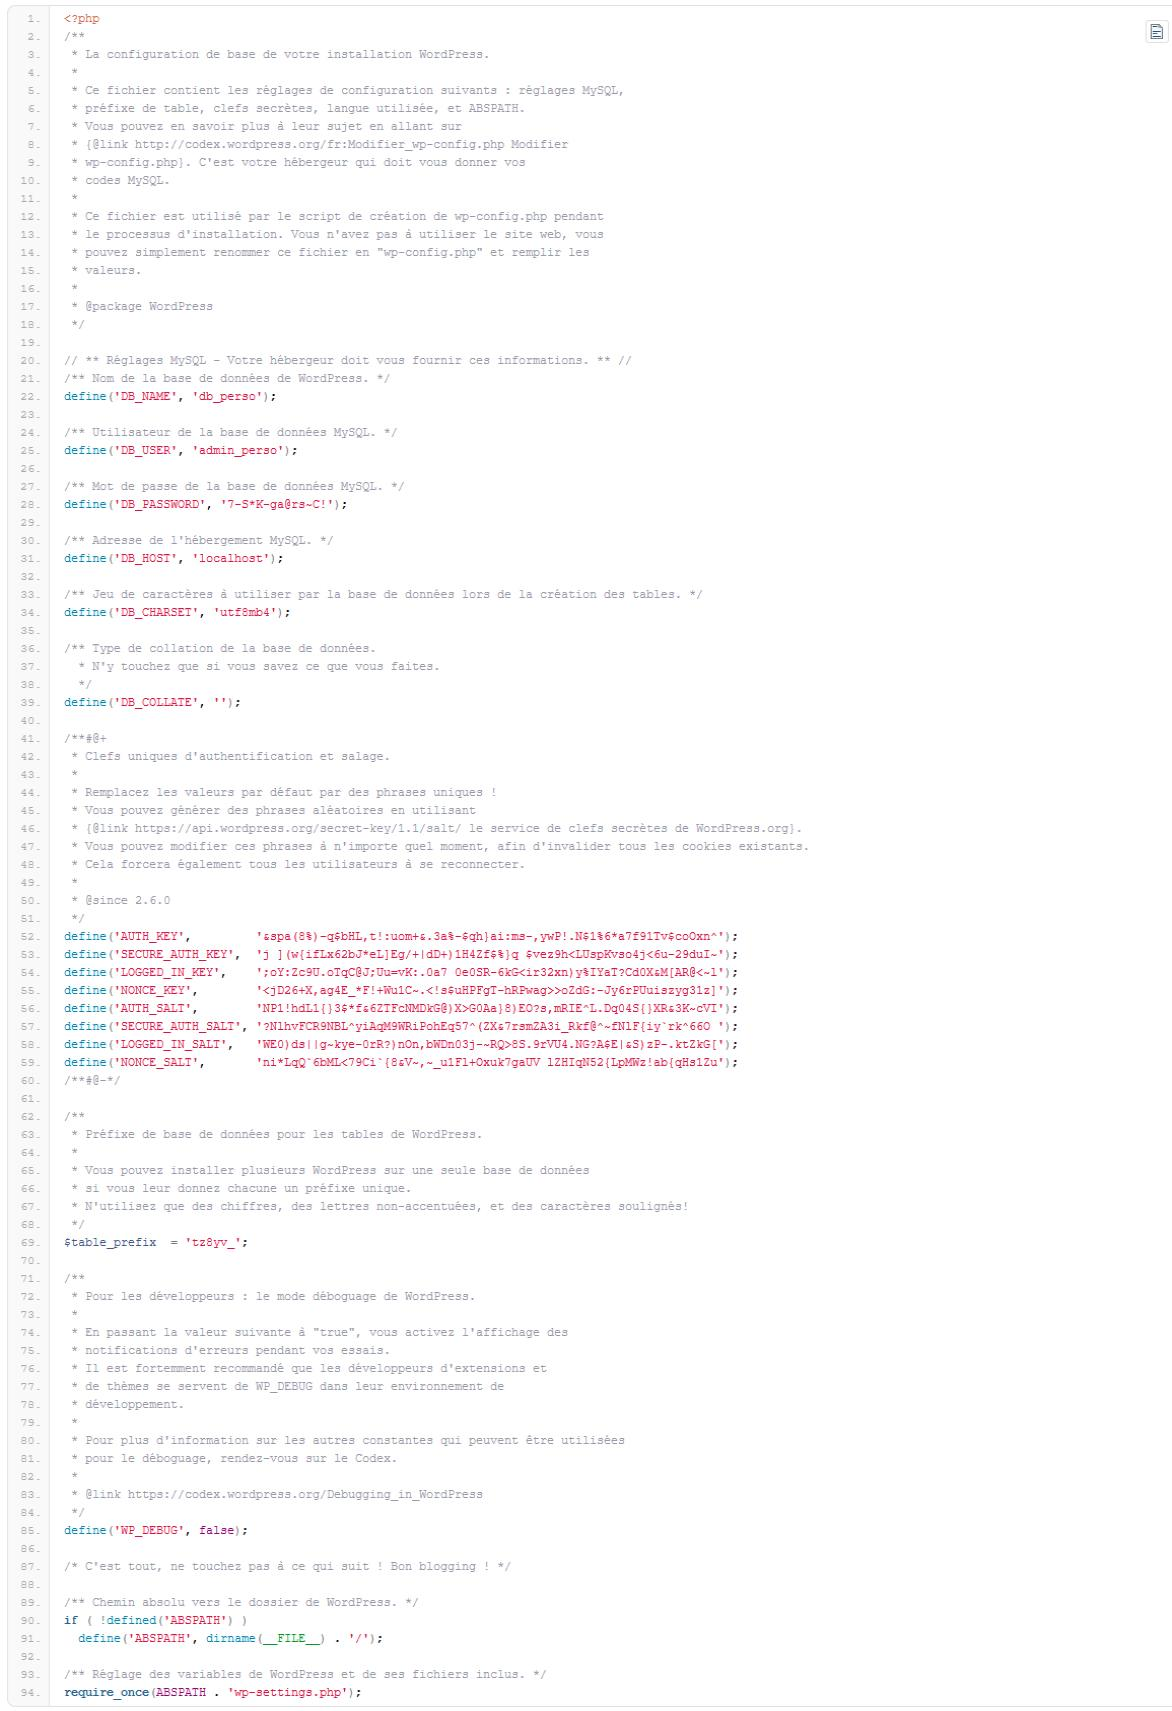 fichier wp_config.php